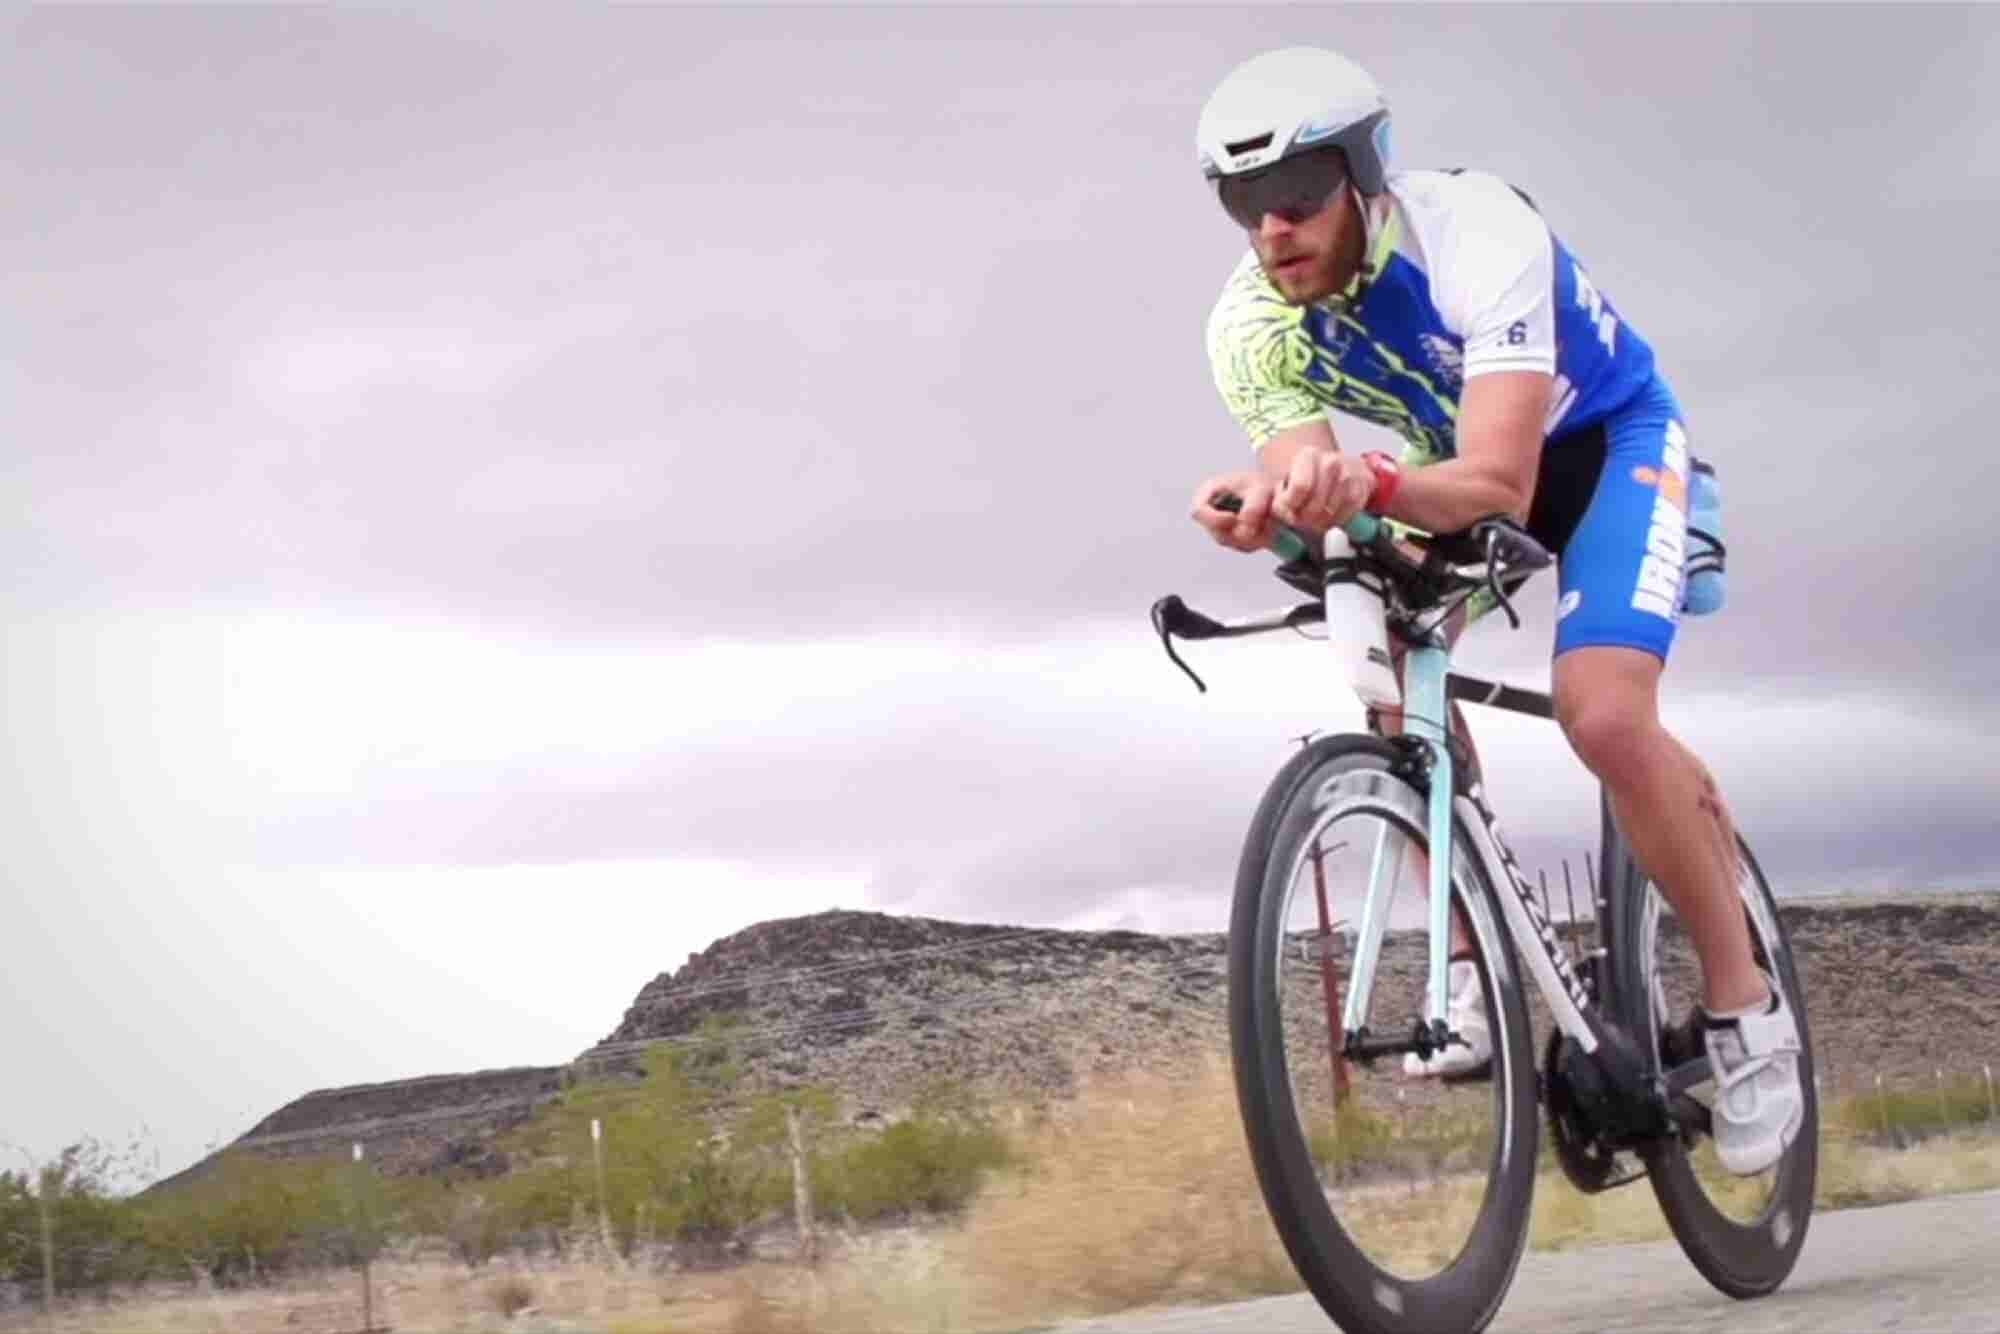 5 Lessons for Entrepreneurs From the Man Who Completed 50 Ironman Tria...